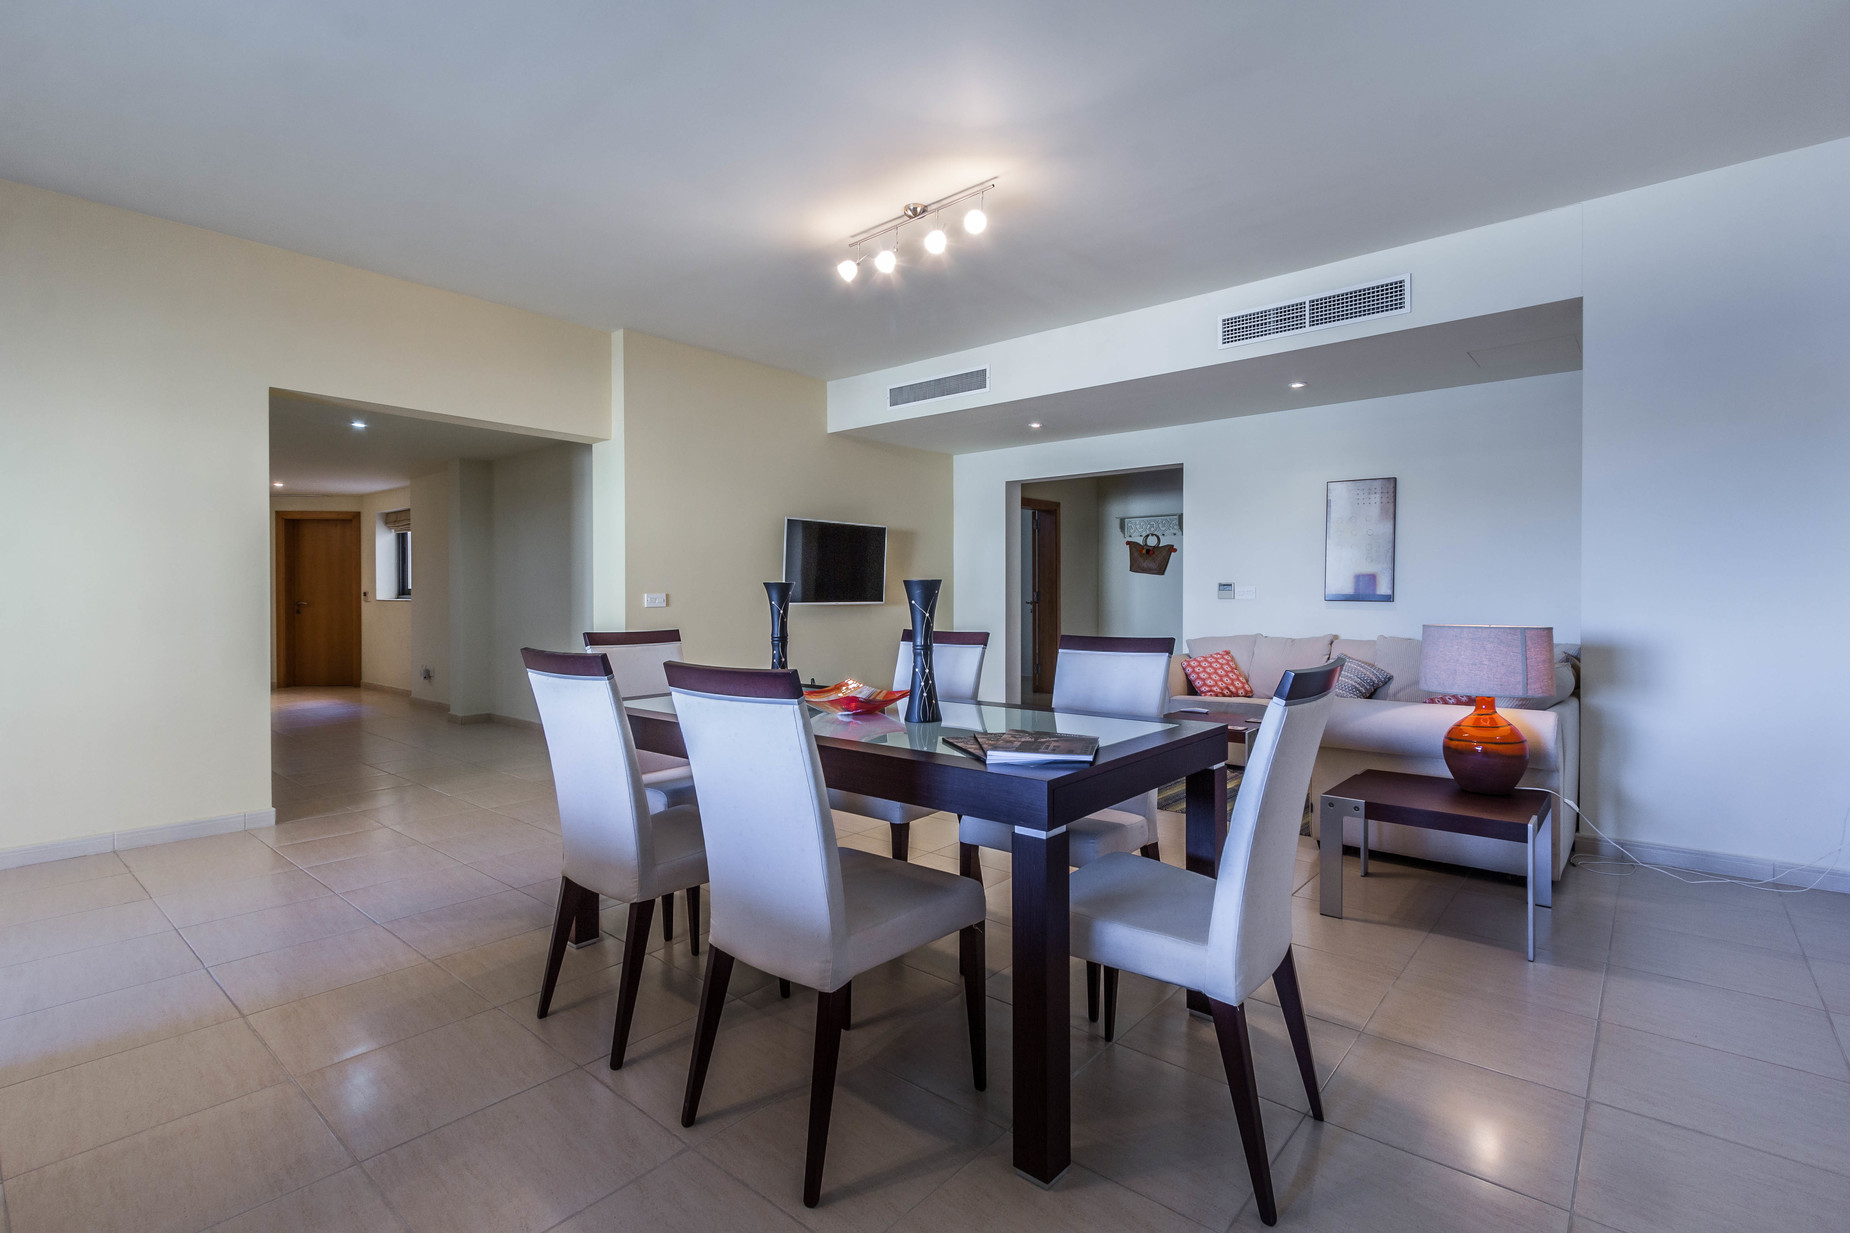 4 bed Apartment For Sale in Mellieha, Mellieha - thumb 7